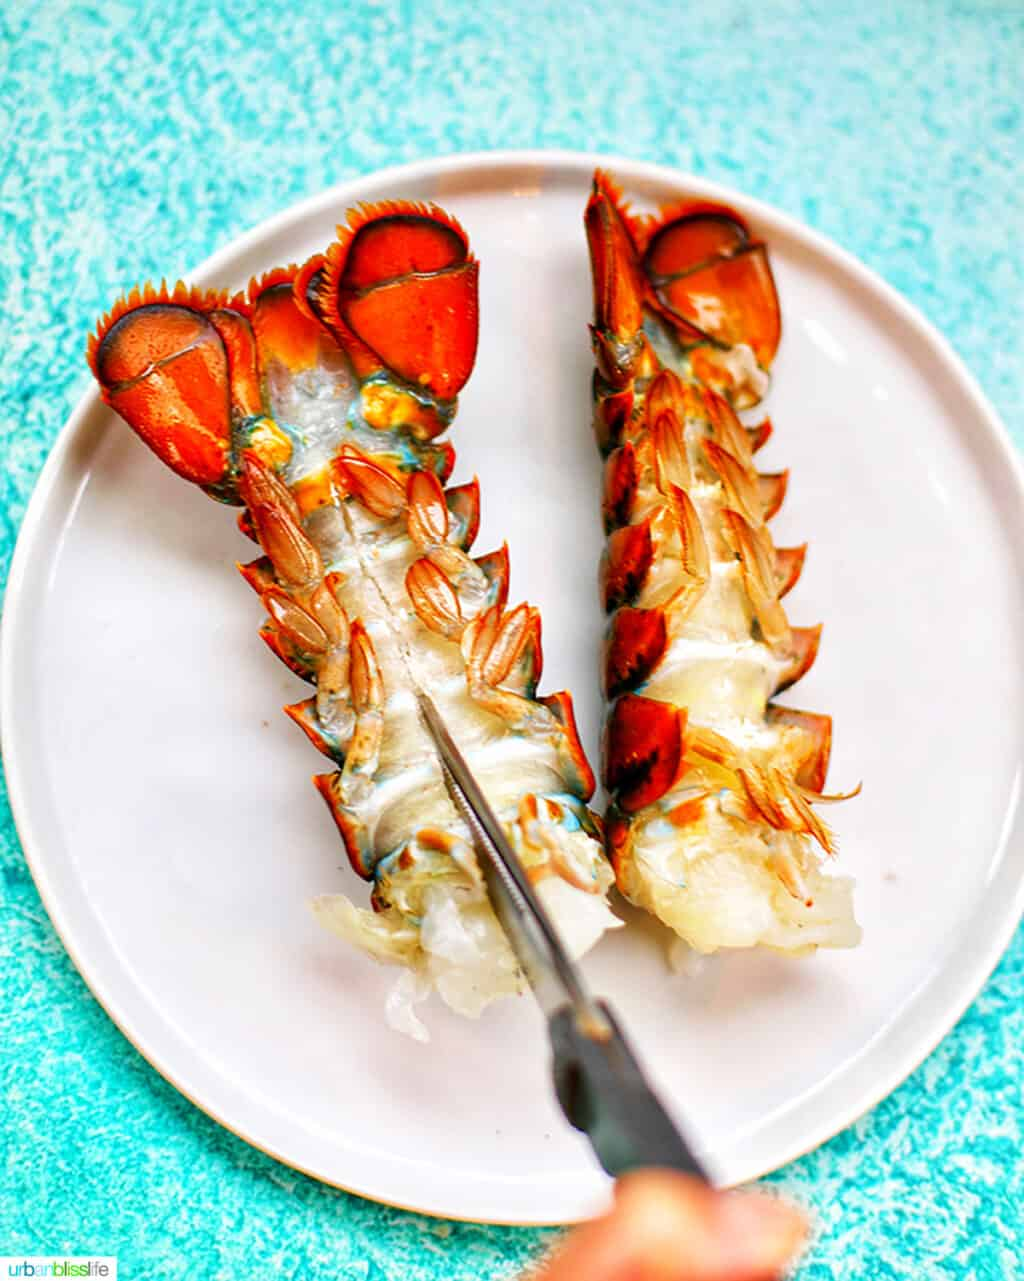 cutting lobster tails on a white plate against a blue background